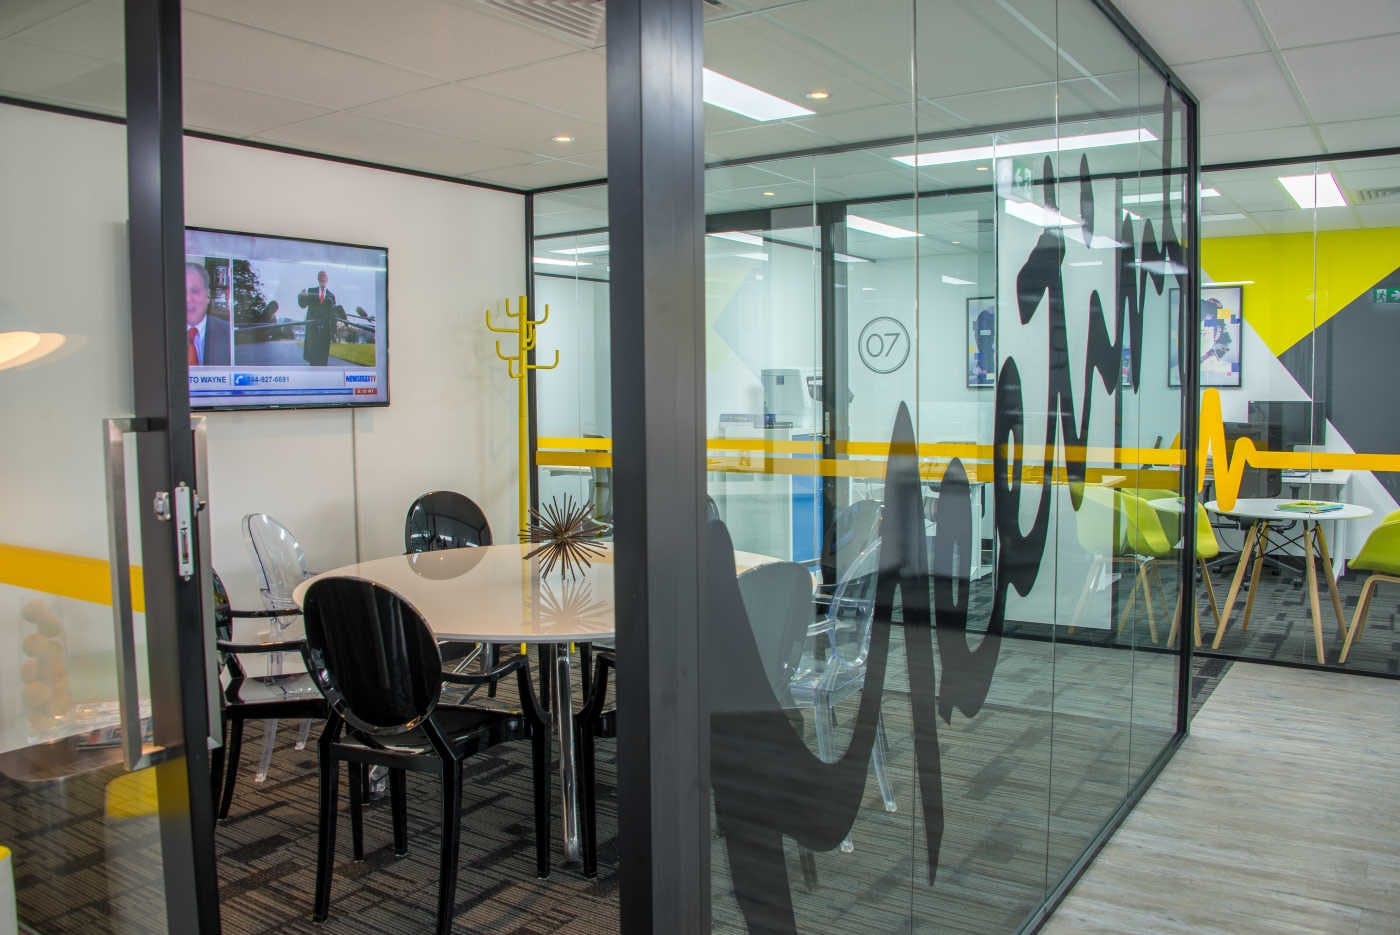 Boardroom, meeting room at Anytime Offices Botany, image 3